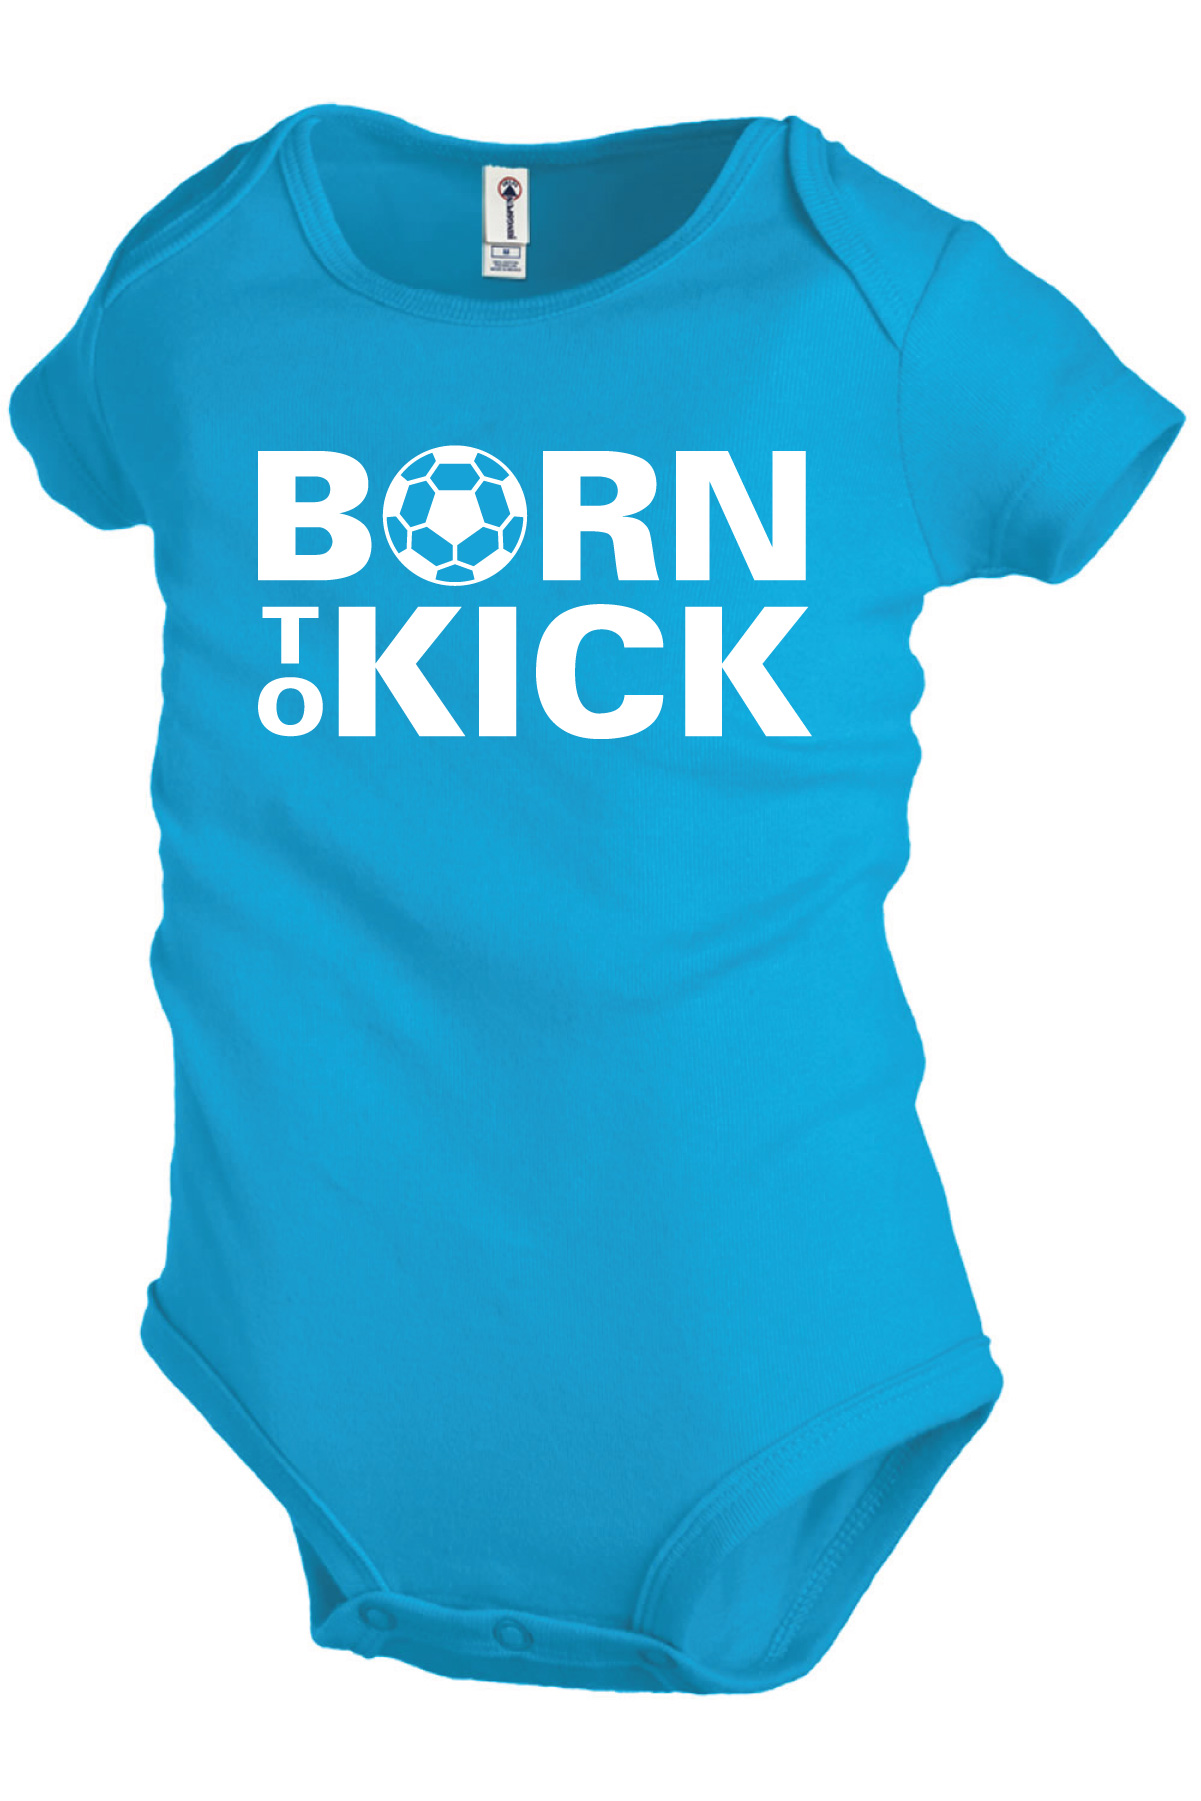 Born To Kick soccer onesie in turquoise by Code Four Athletics